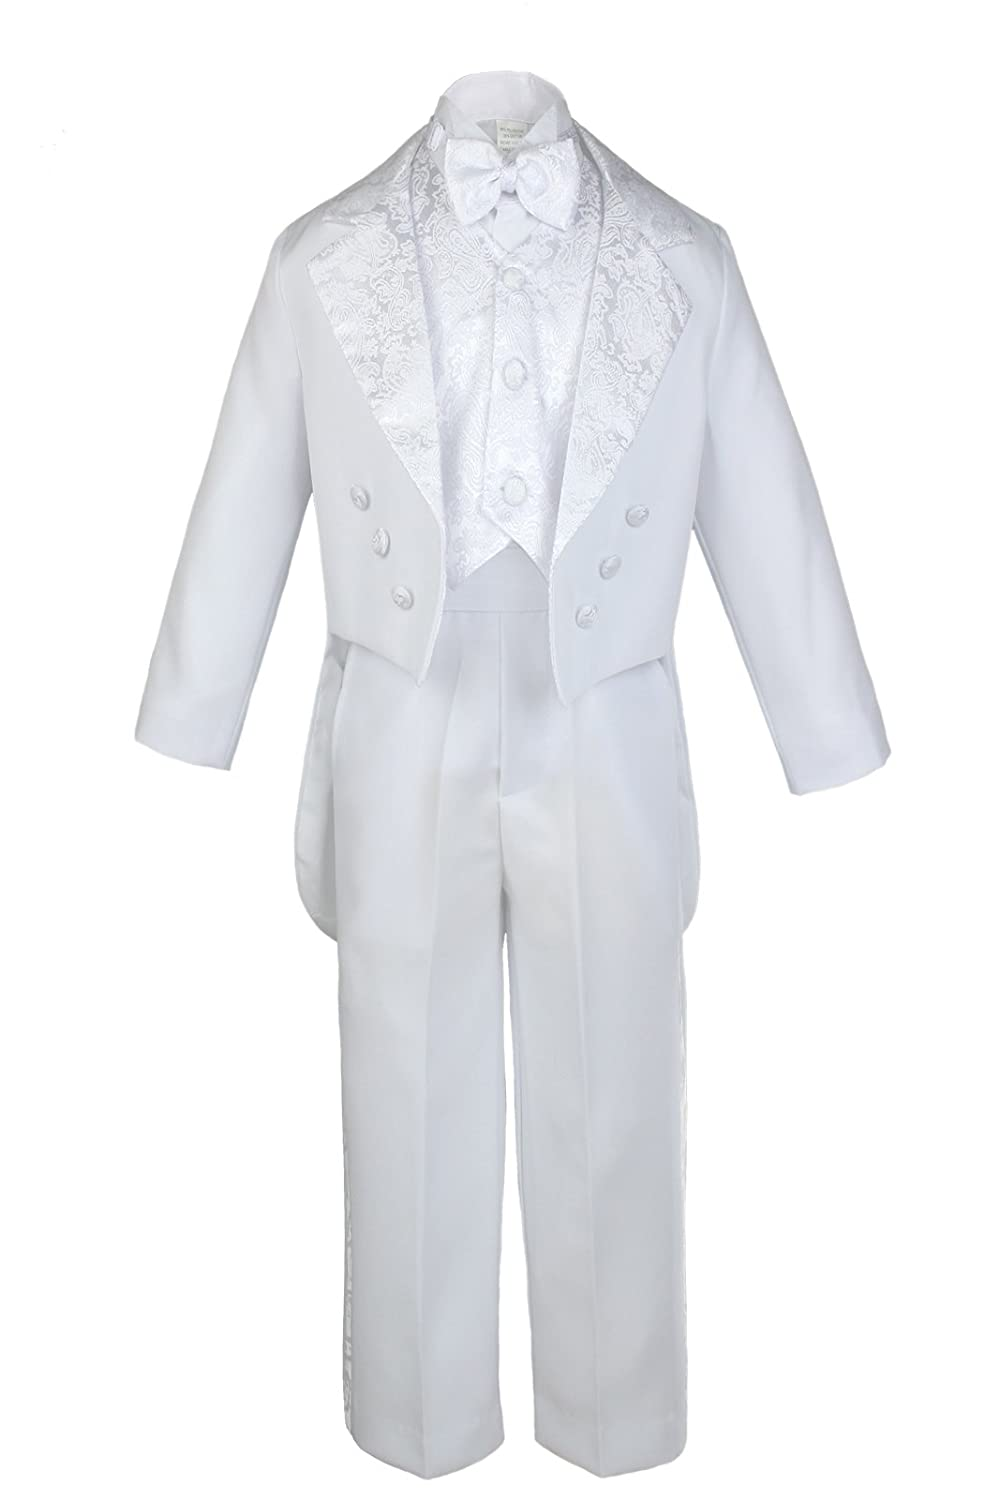 3510585a7 Amazon.com: Unotux Boys Christening Baptism Suits Tuxedo White Tail  Guadalupe Stole S-7: Clothing